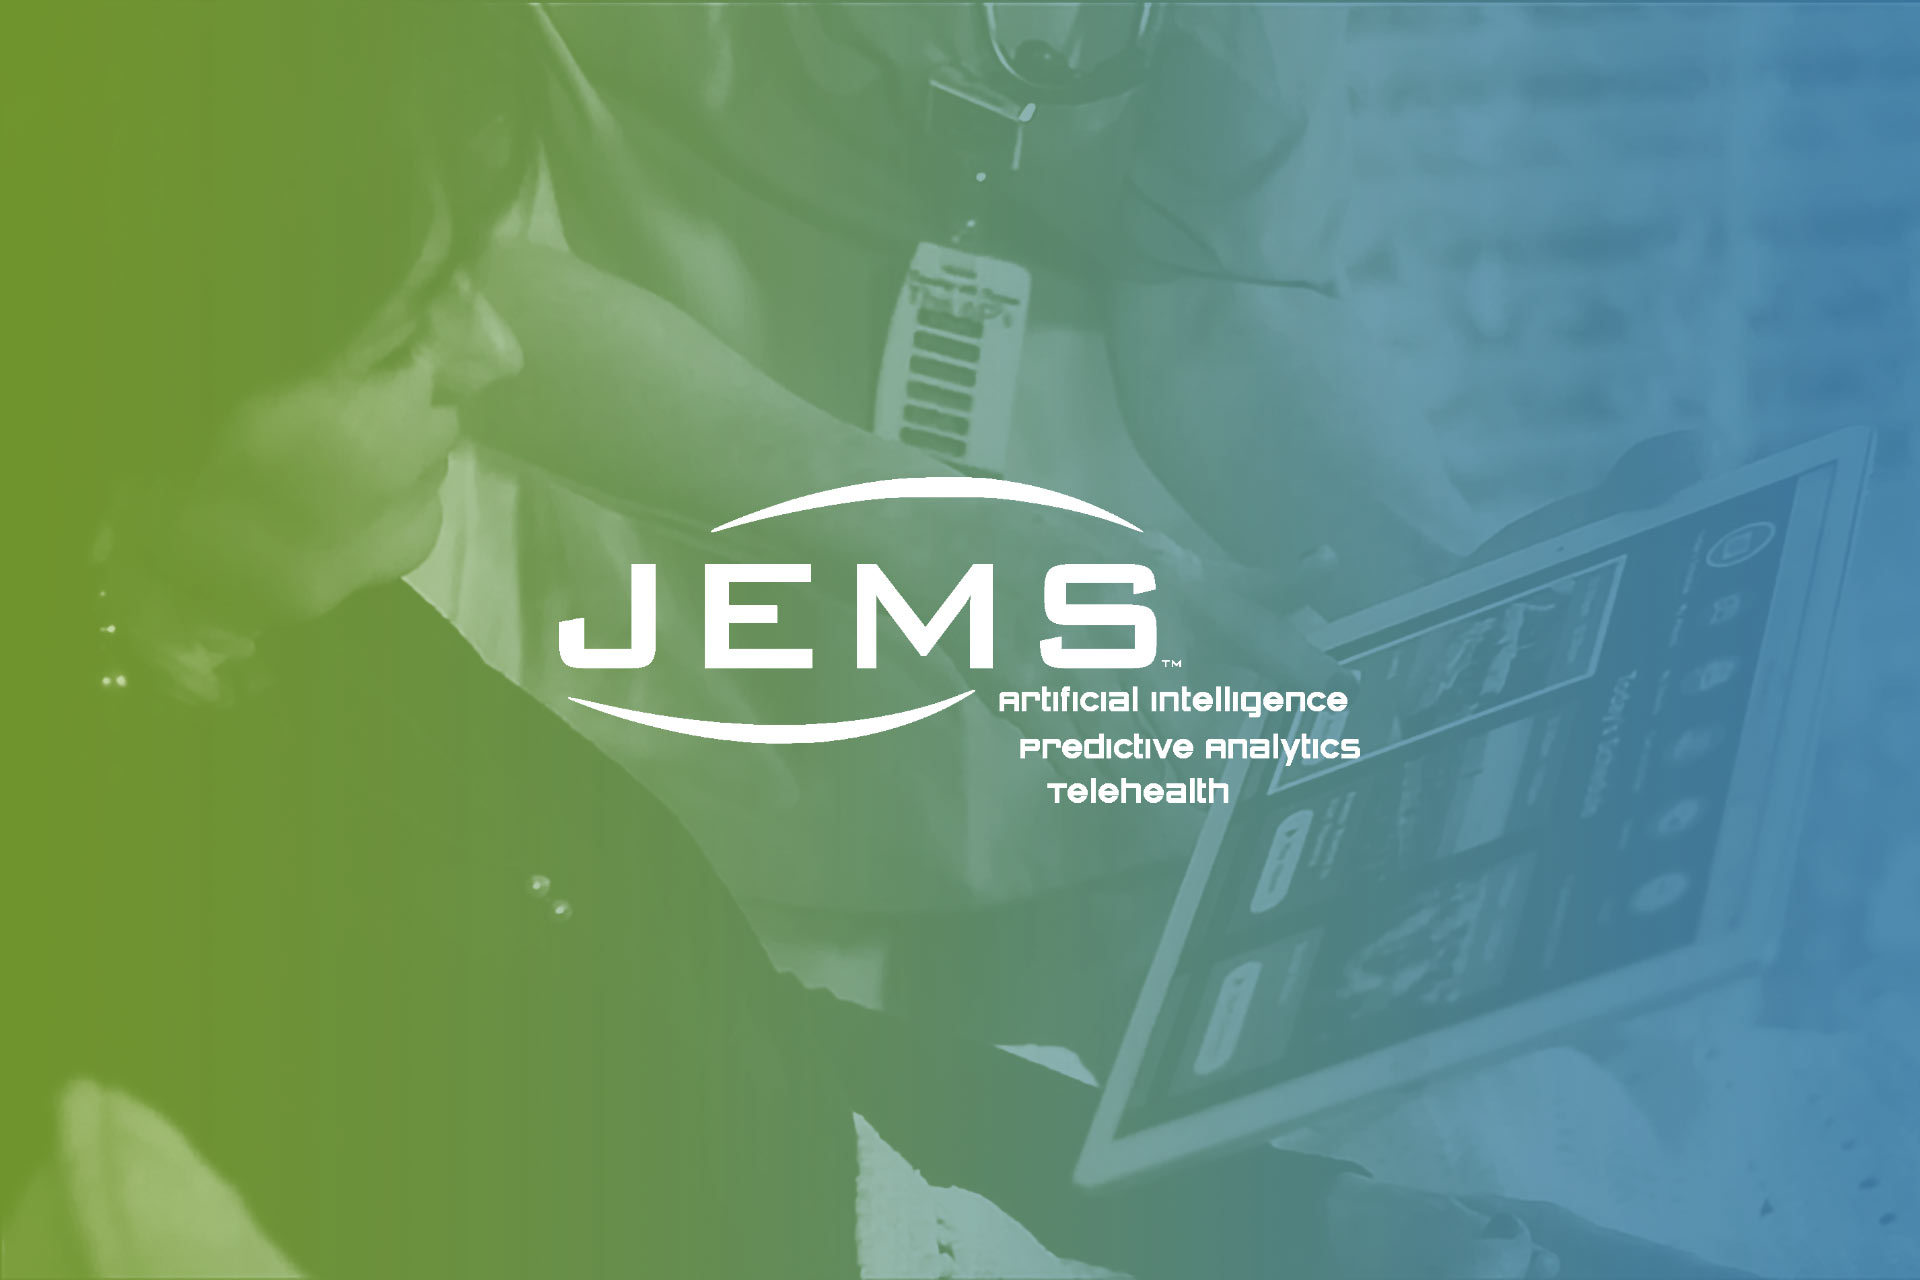 JEMS Artificial Intelligence predictive analytics telehealth